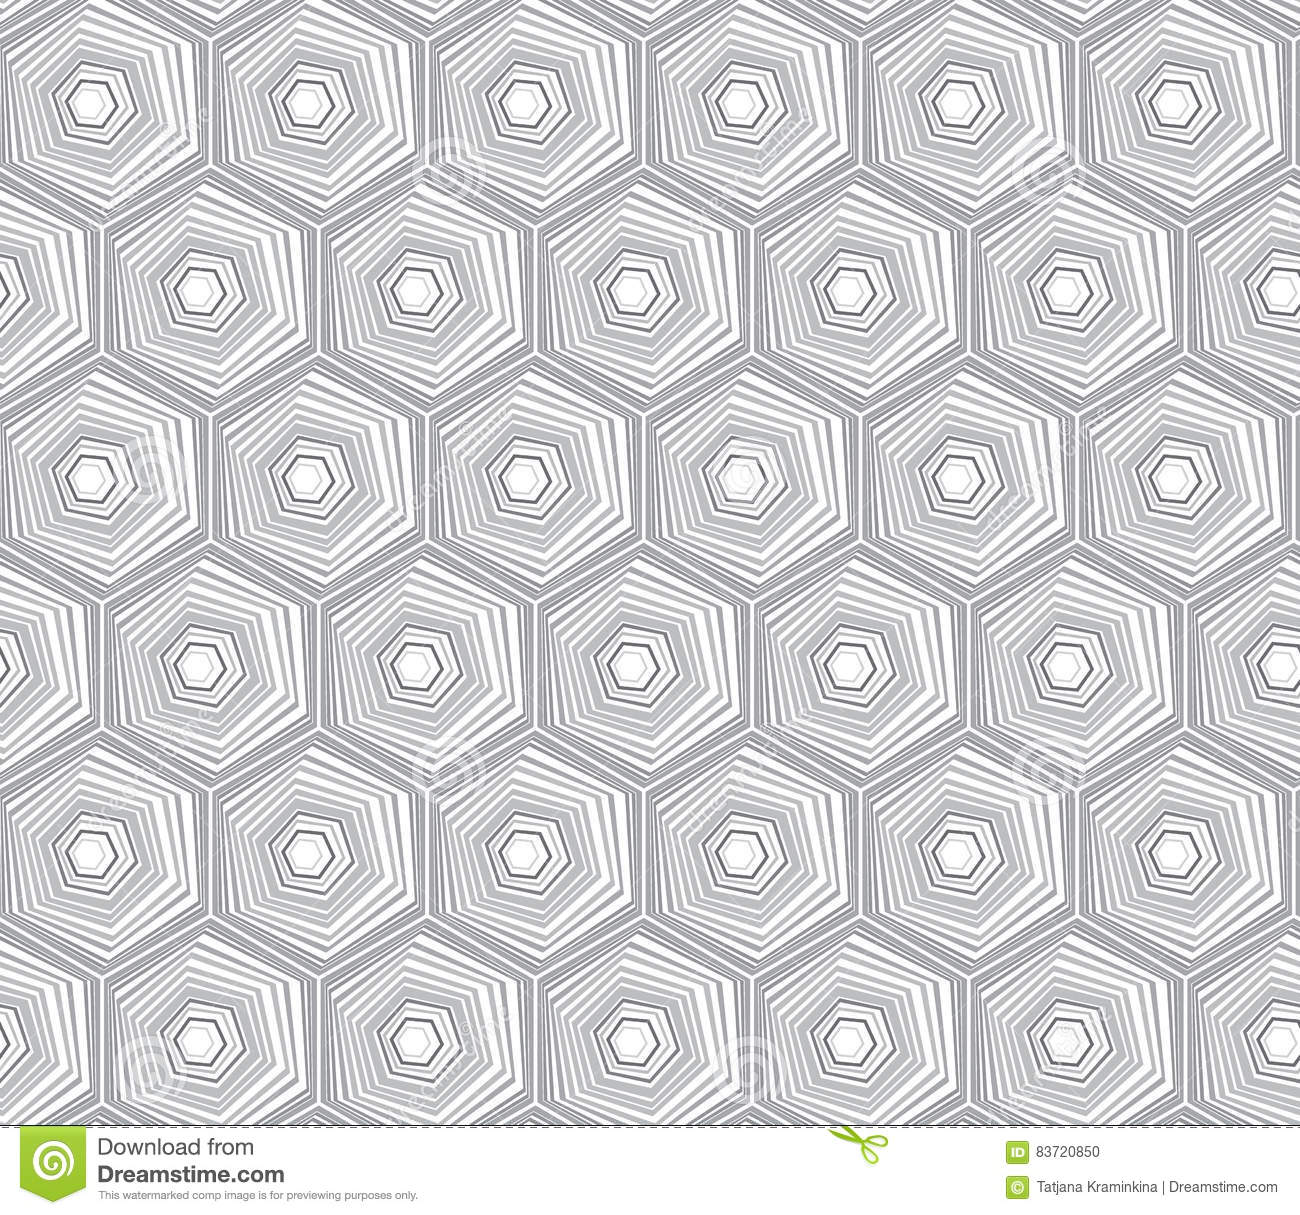 Geometric Seamless Repeating Pattern With Hexagon Shapes In Pastel And Hand Drawn Dots Texture. Stock Vector